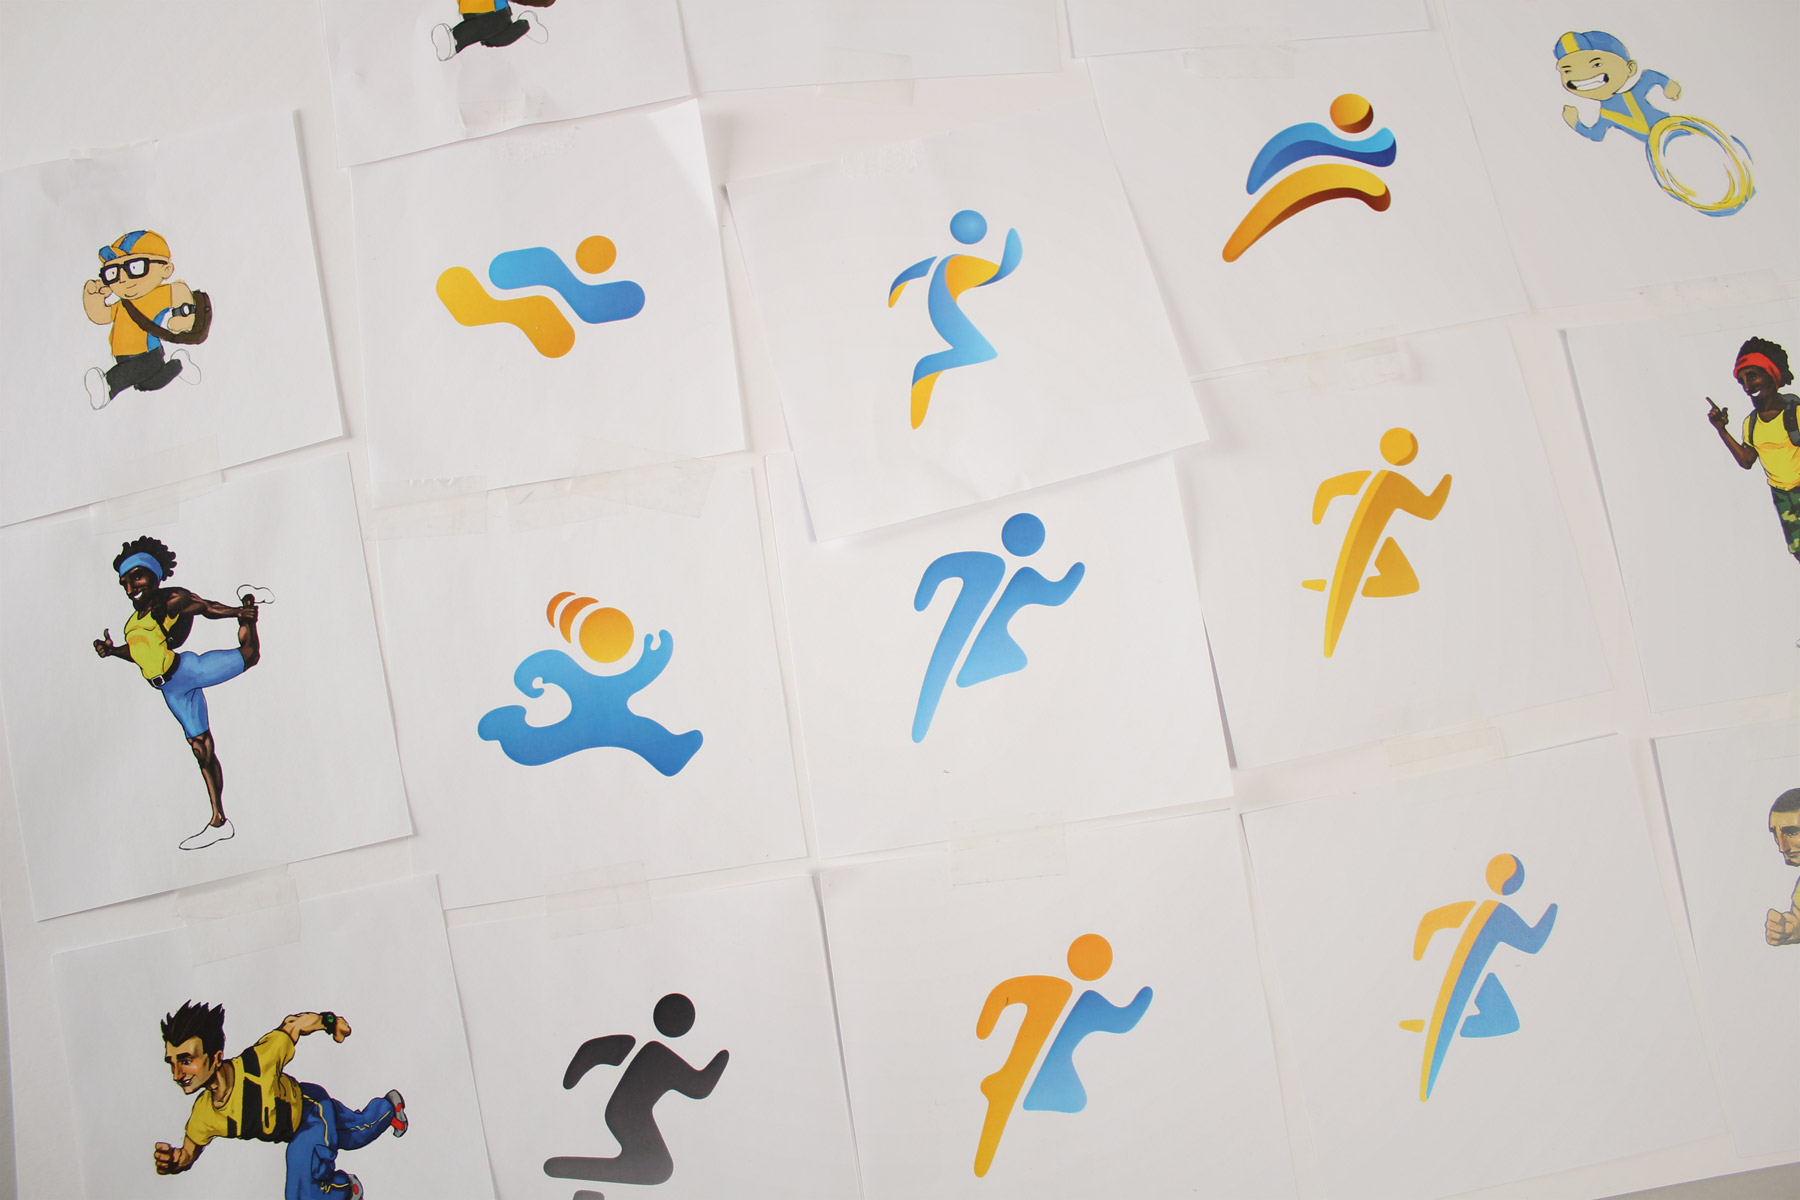 The icon design explored various directions in tone and spirit, from casual to more contemporary.